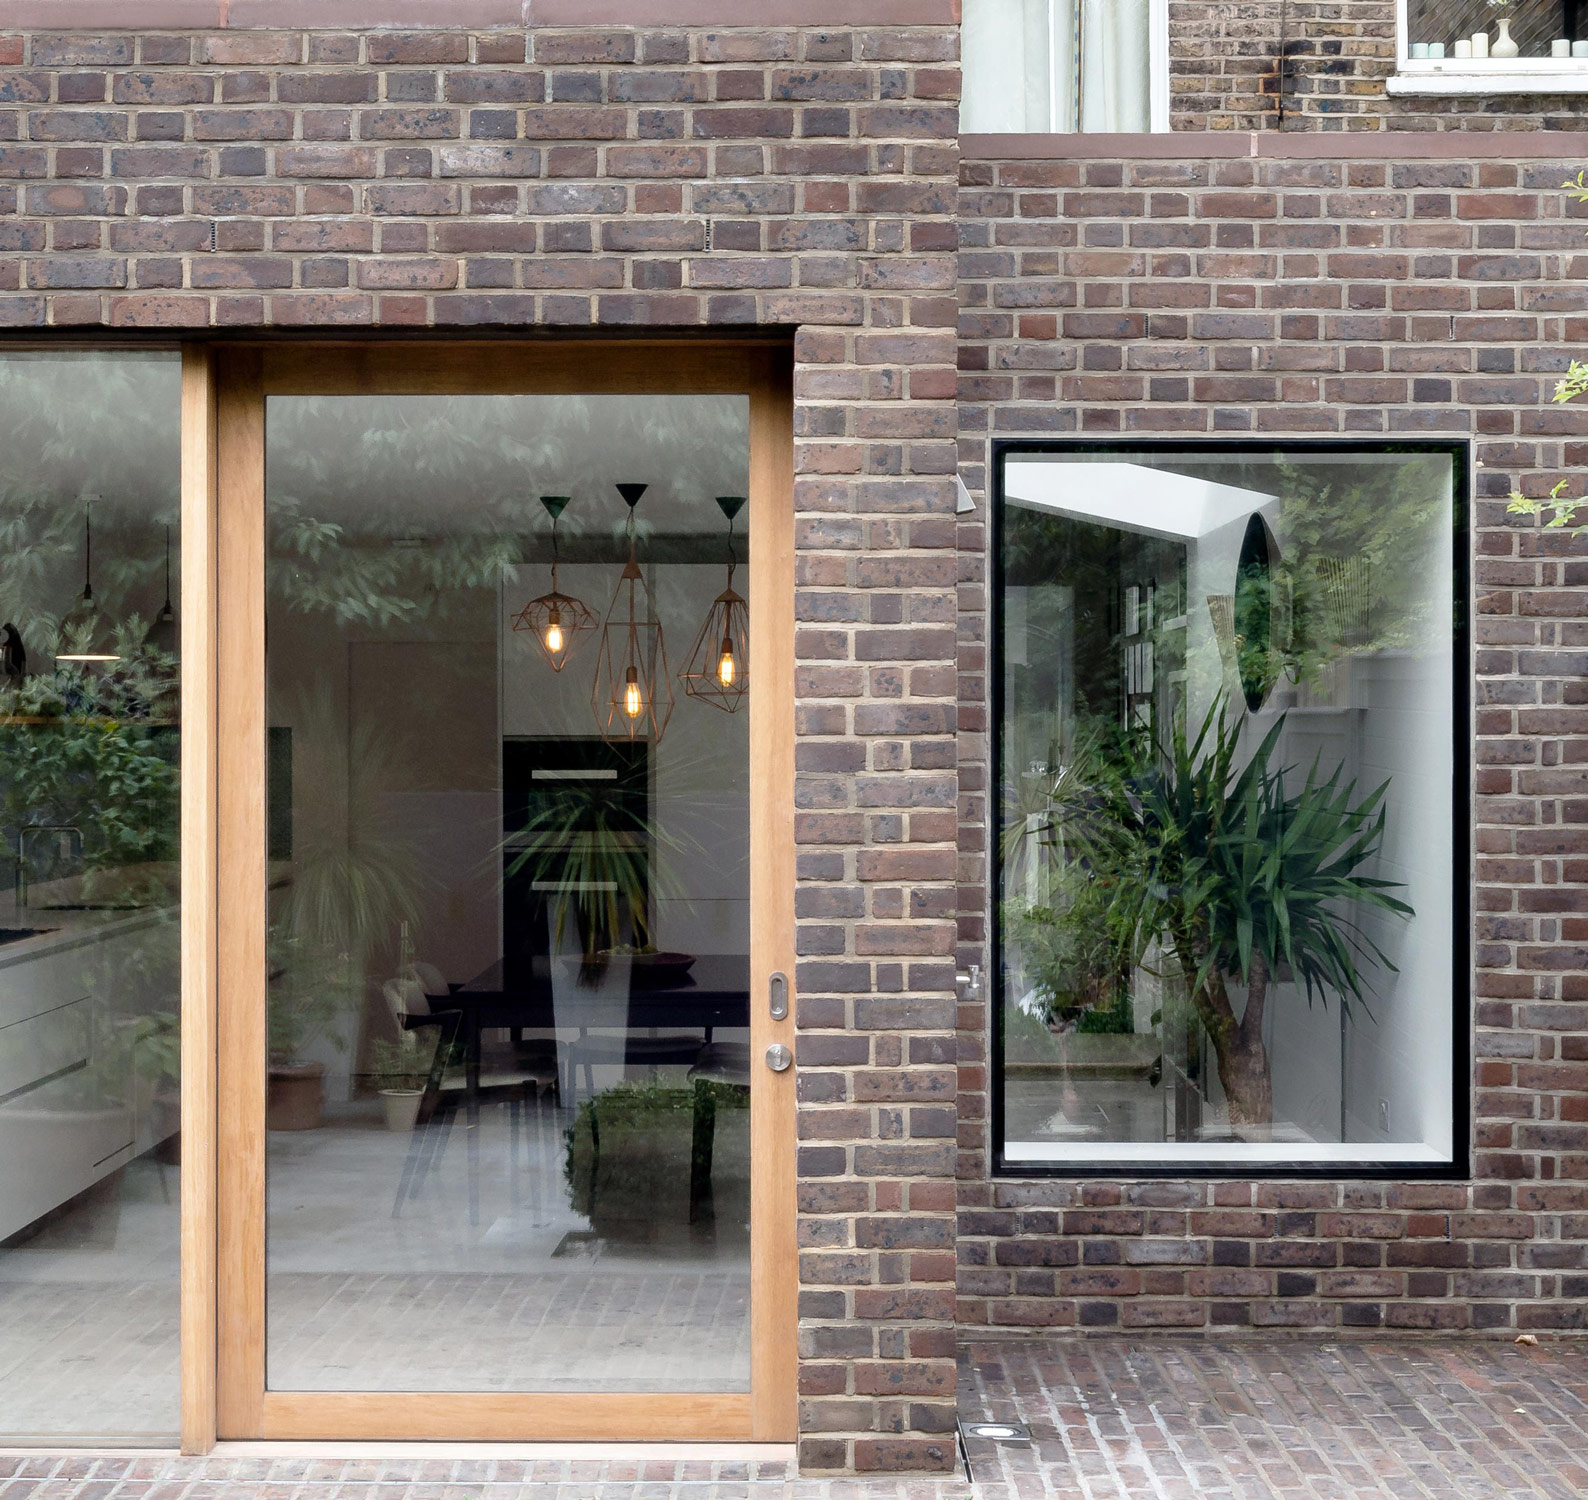 Kensington house extension - West London architects